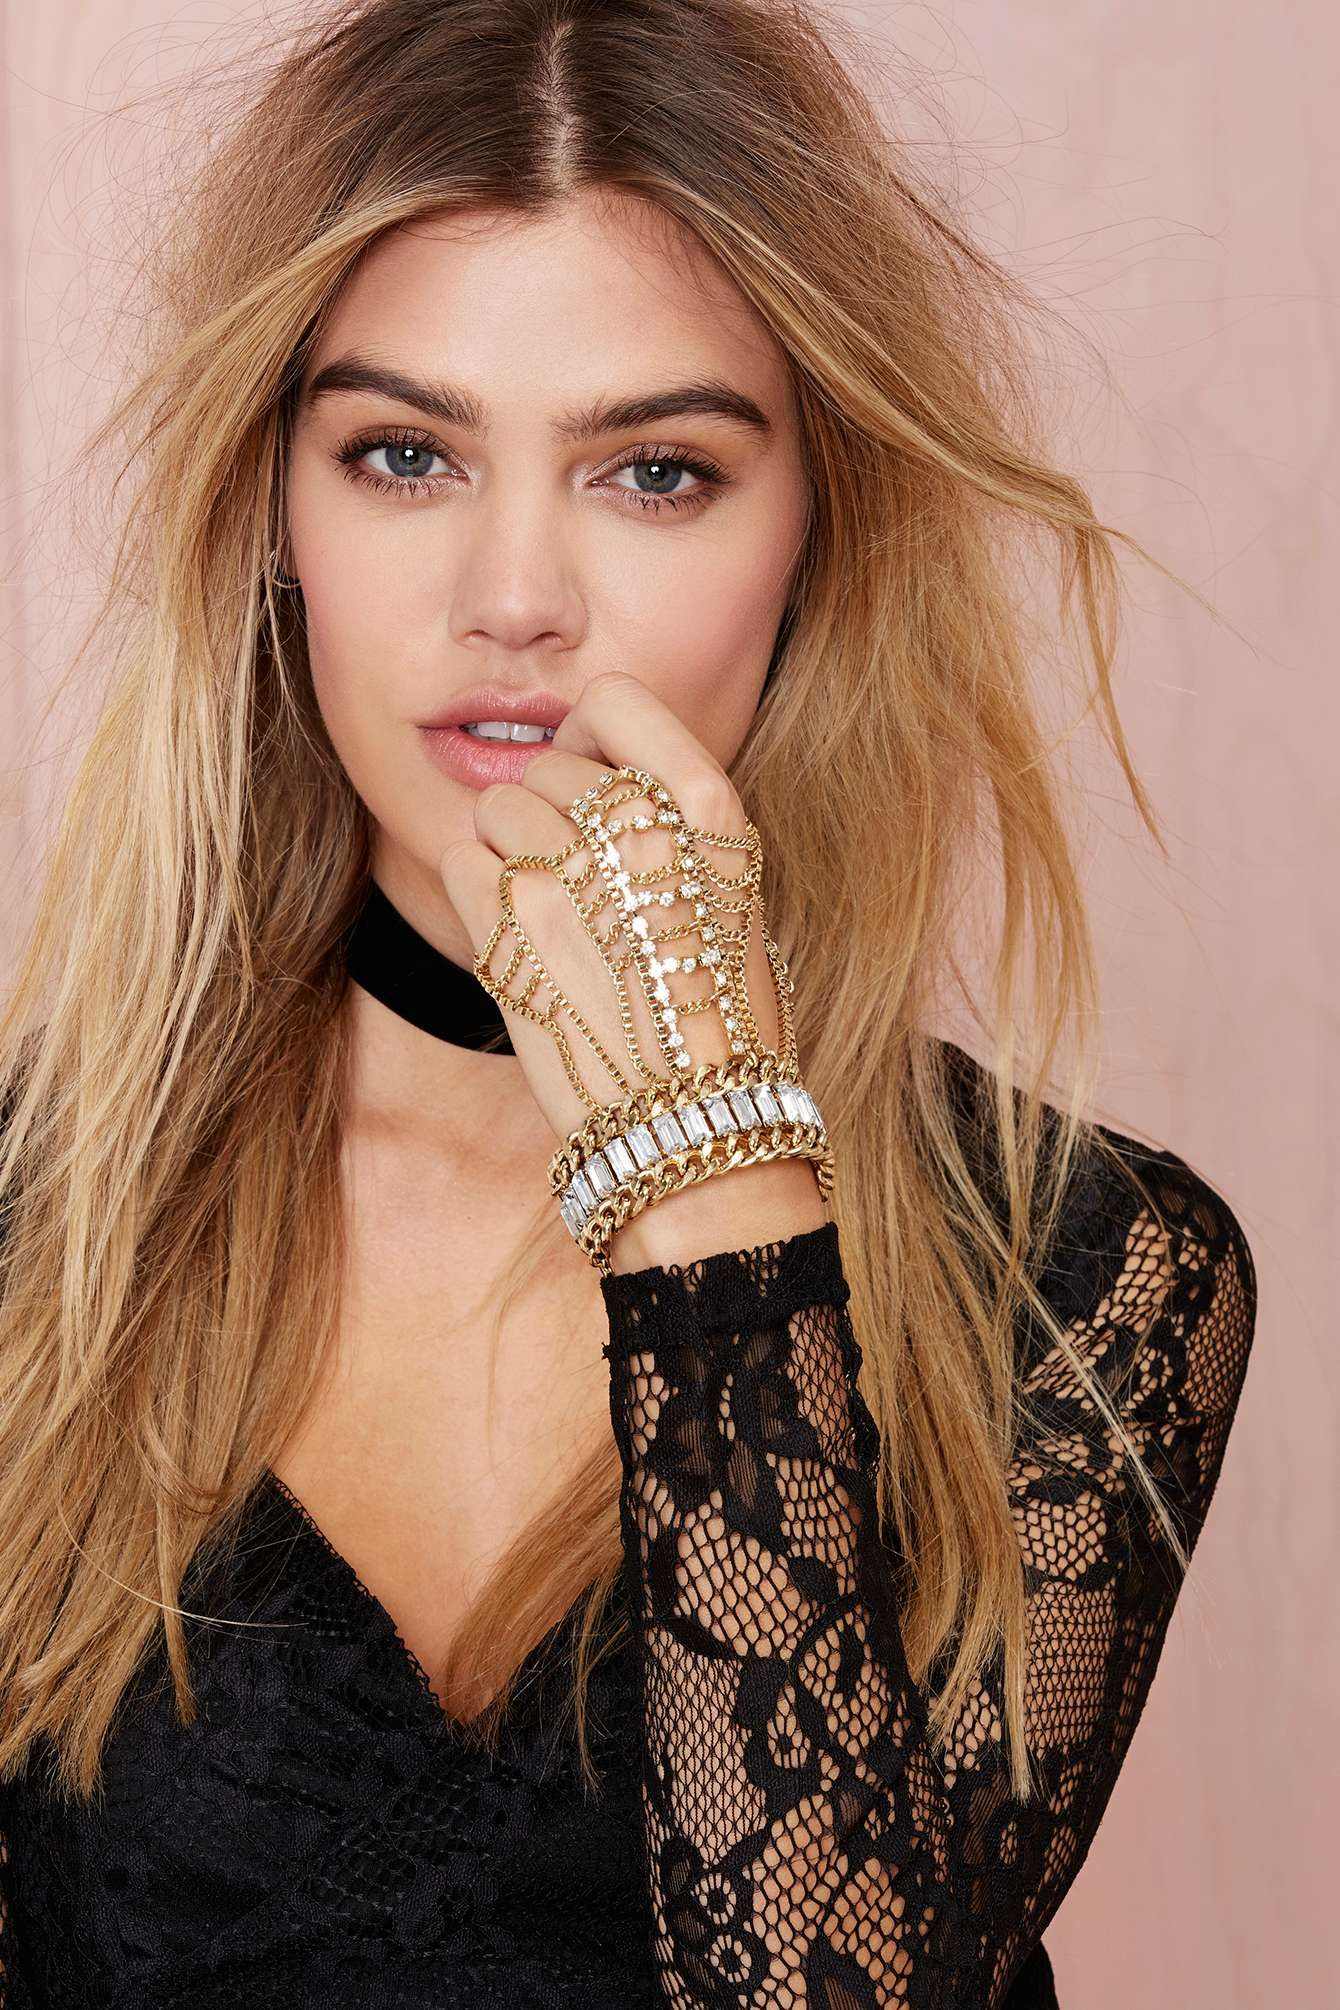 Models, Jewelry, Accessories, Whats In, Whats Out recommend